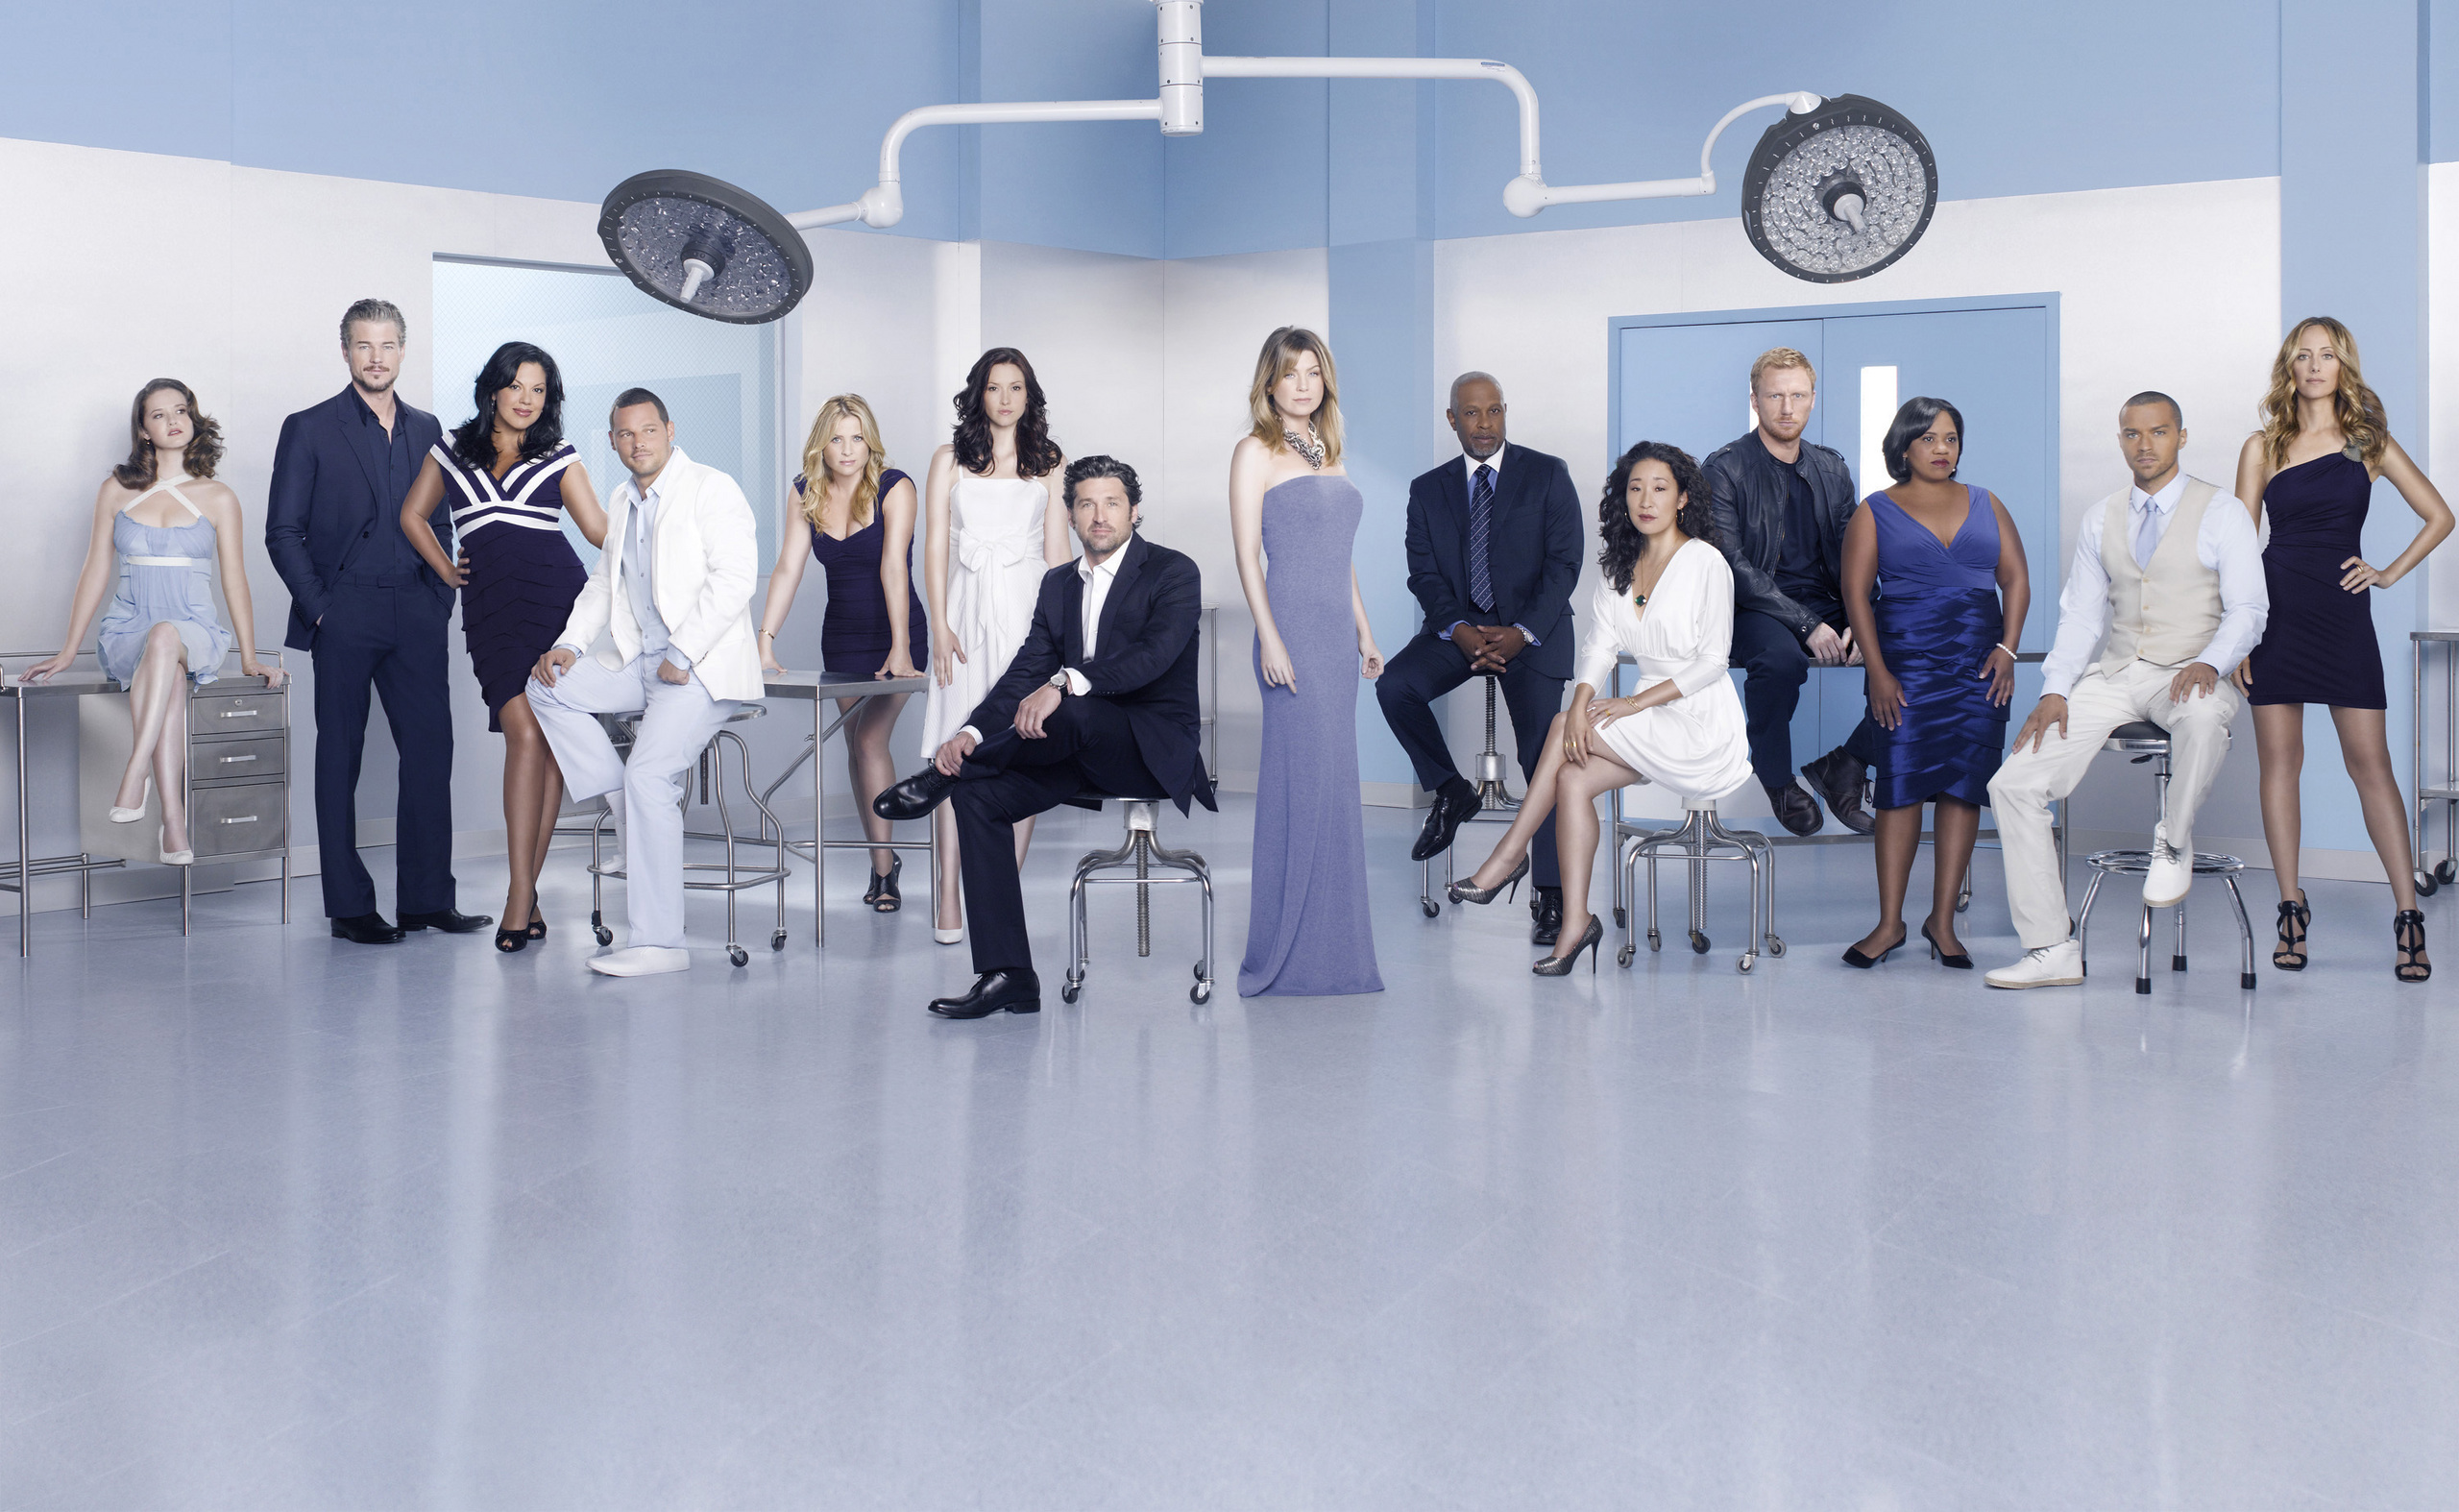 http://images4.fanpop.com/image/photos/15600000/Season-7-Cast-Promotional-Photo-HQ-Version-greys-anatomy-15634330-2560-1574.jpg